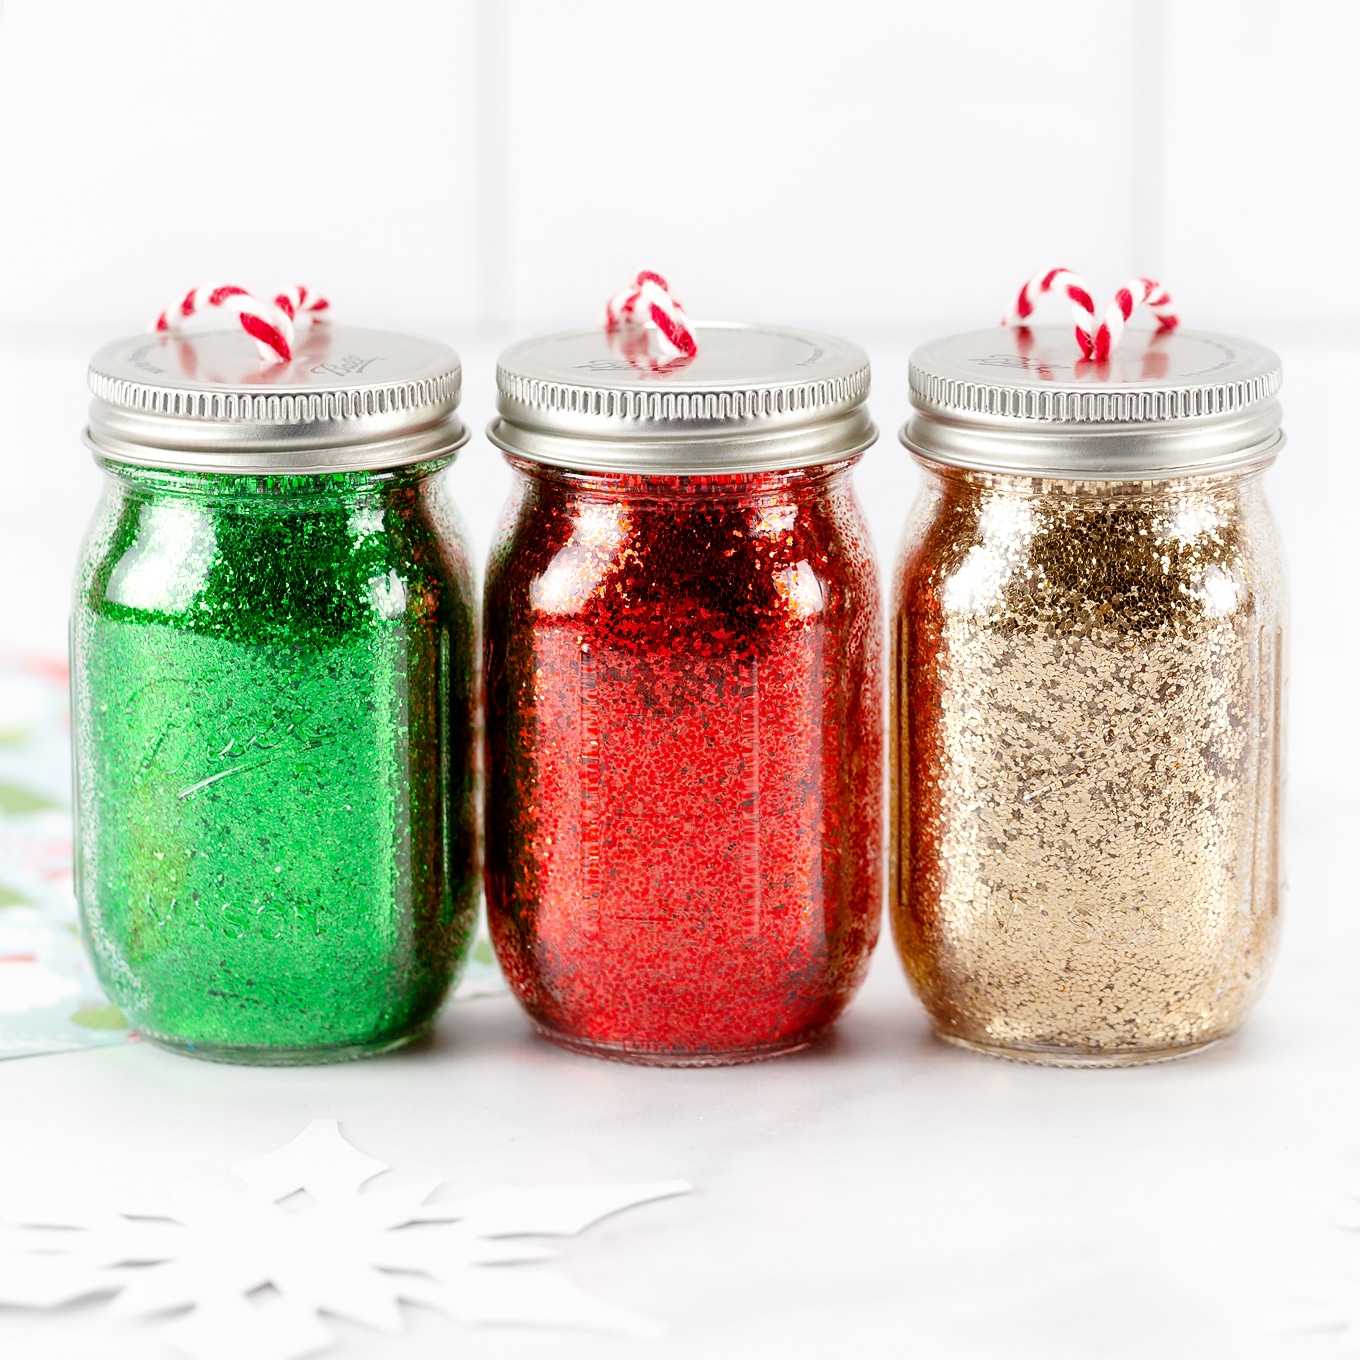 Green, Red, and Gold Glitter Jar Ornaments